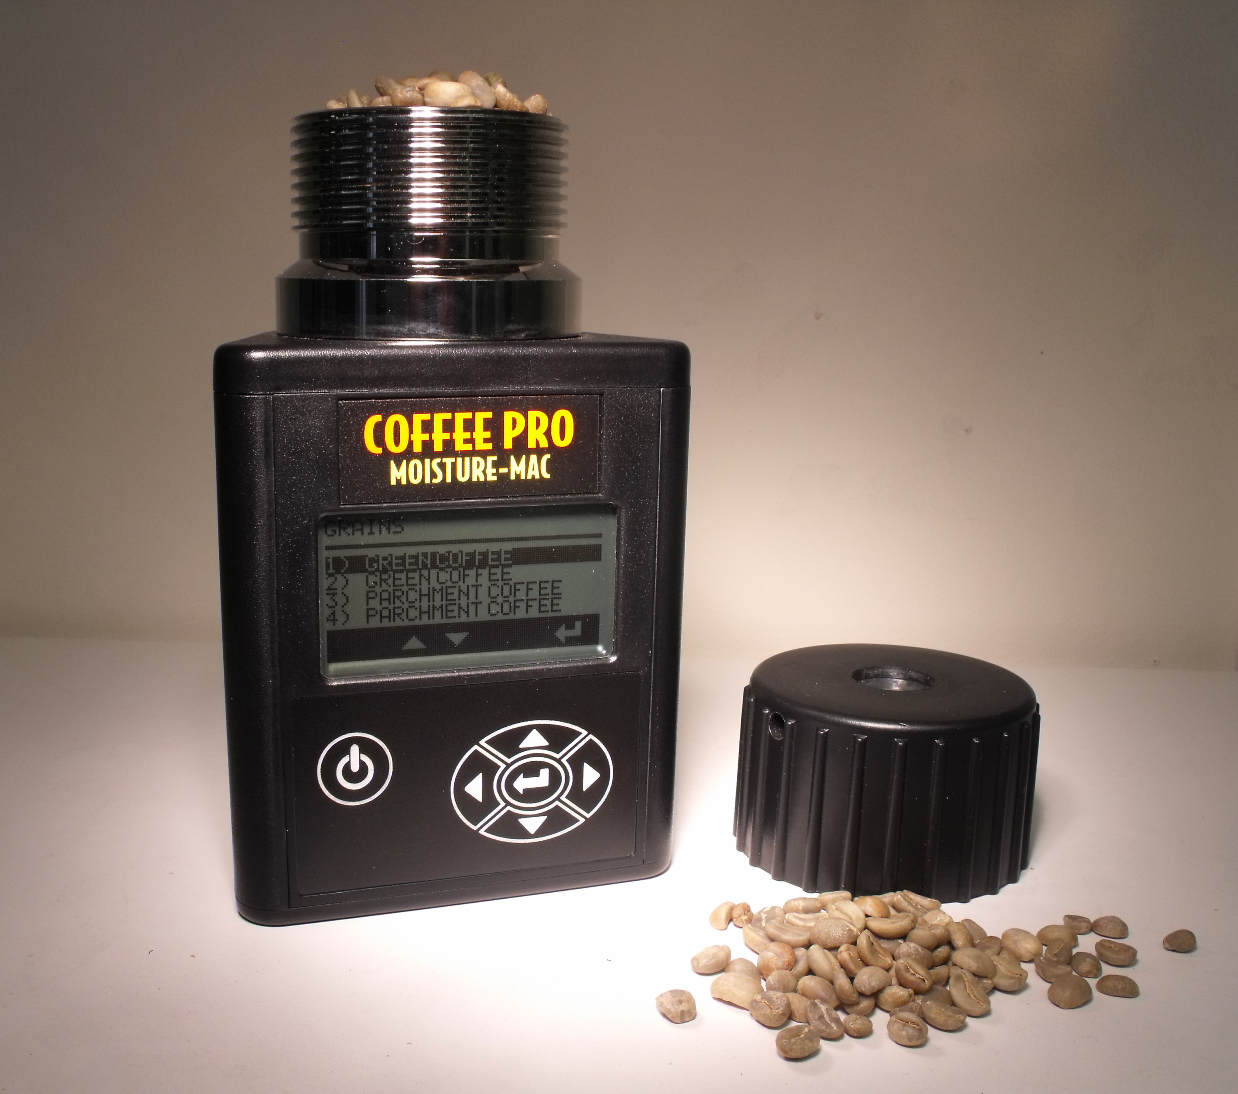 coffee-pro-moisture-mac-graphic-hd-new.png